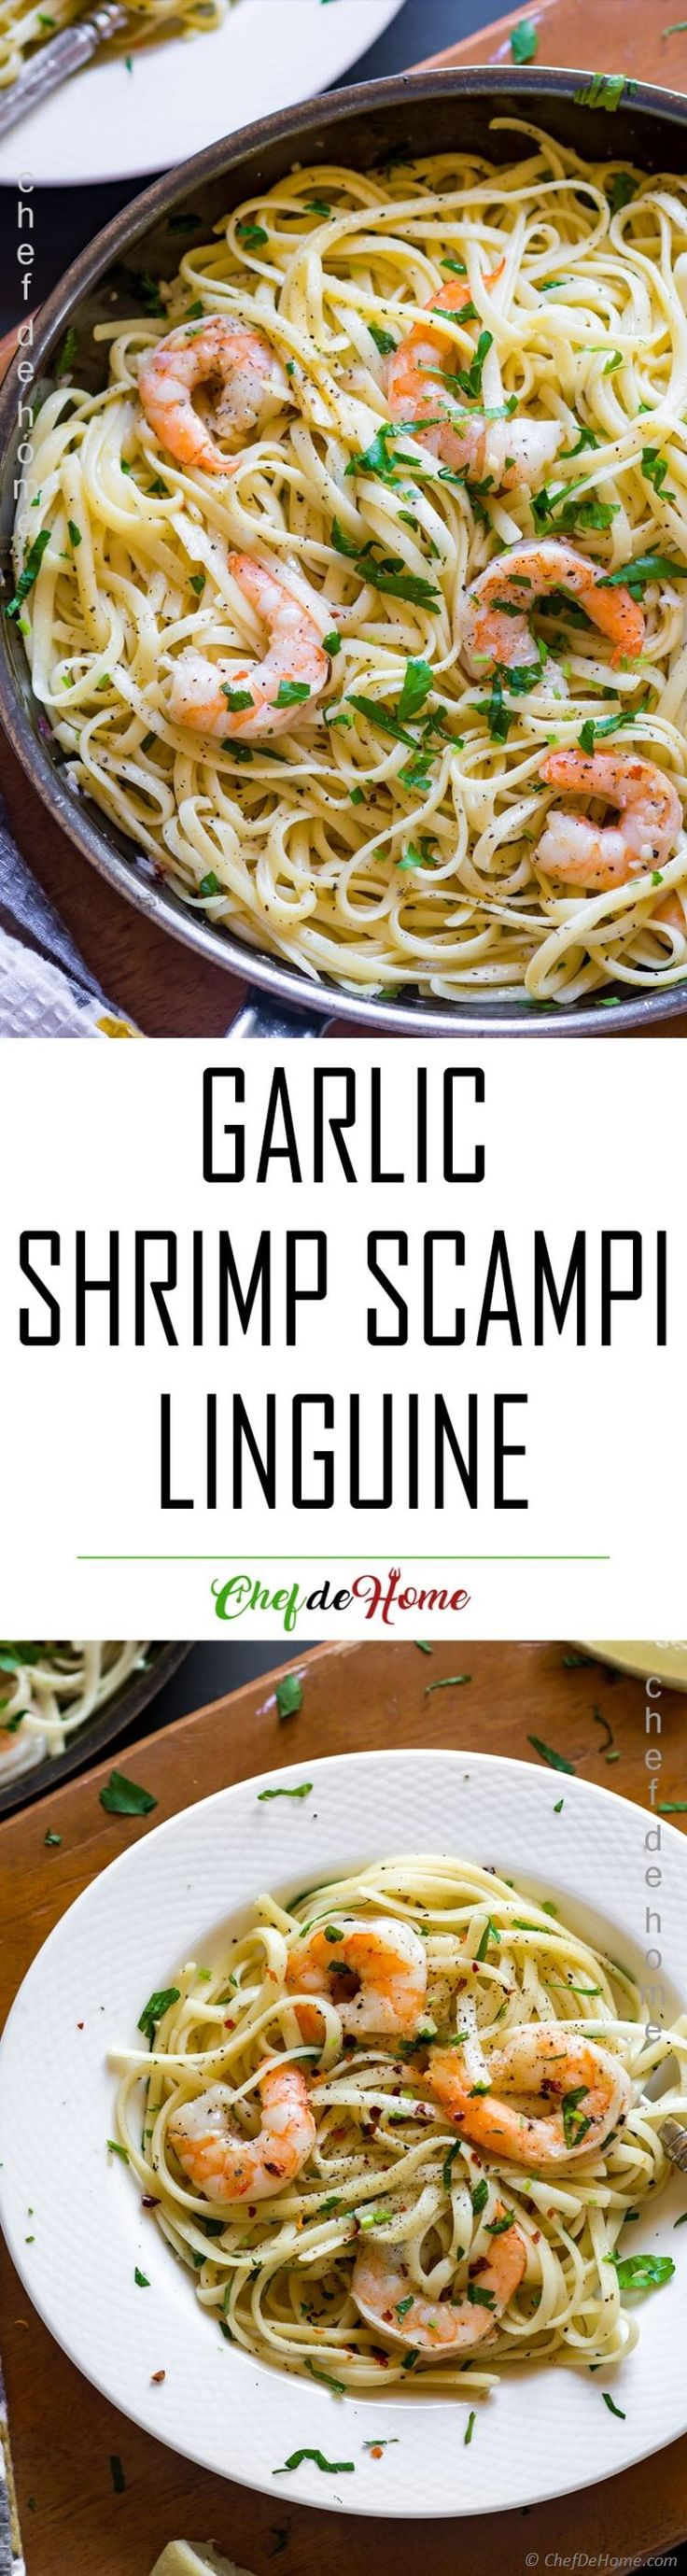 Garlic Shrimp Scampi Linguine - Linguine coated in buttery Garlic and Wine Shrimp Scampi sauce for a 25 minute weeknight pasta dinner!